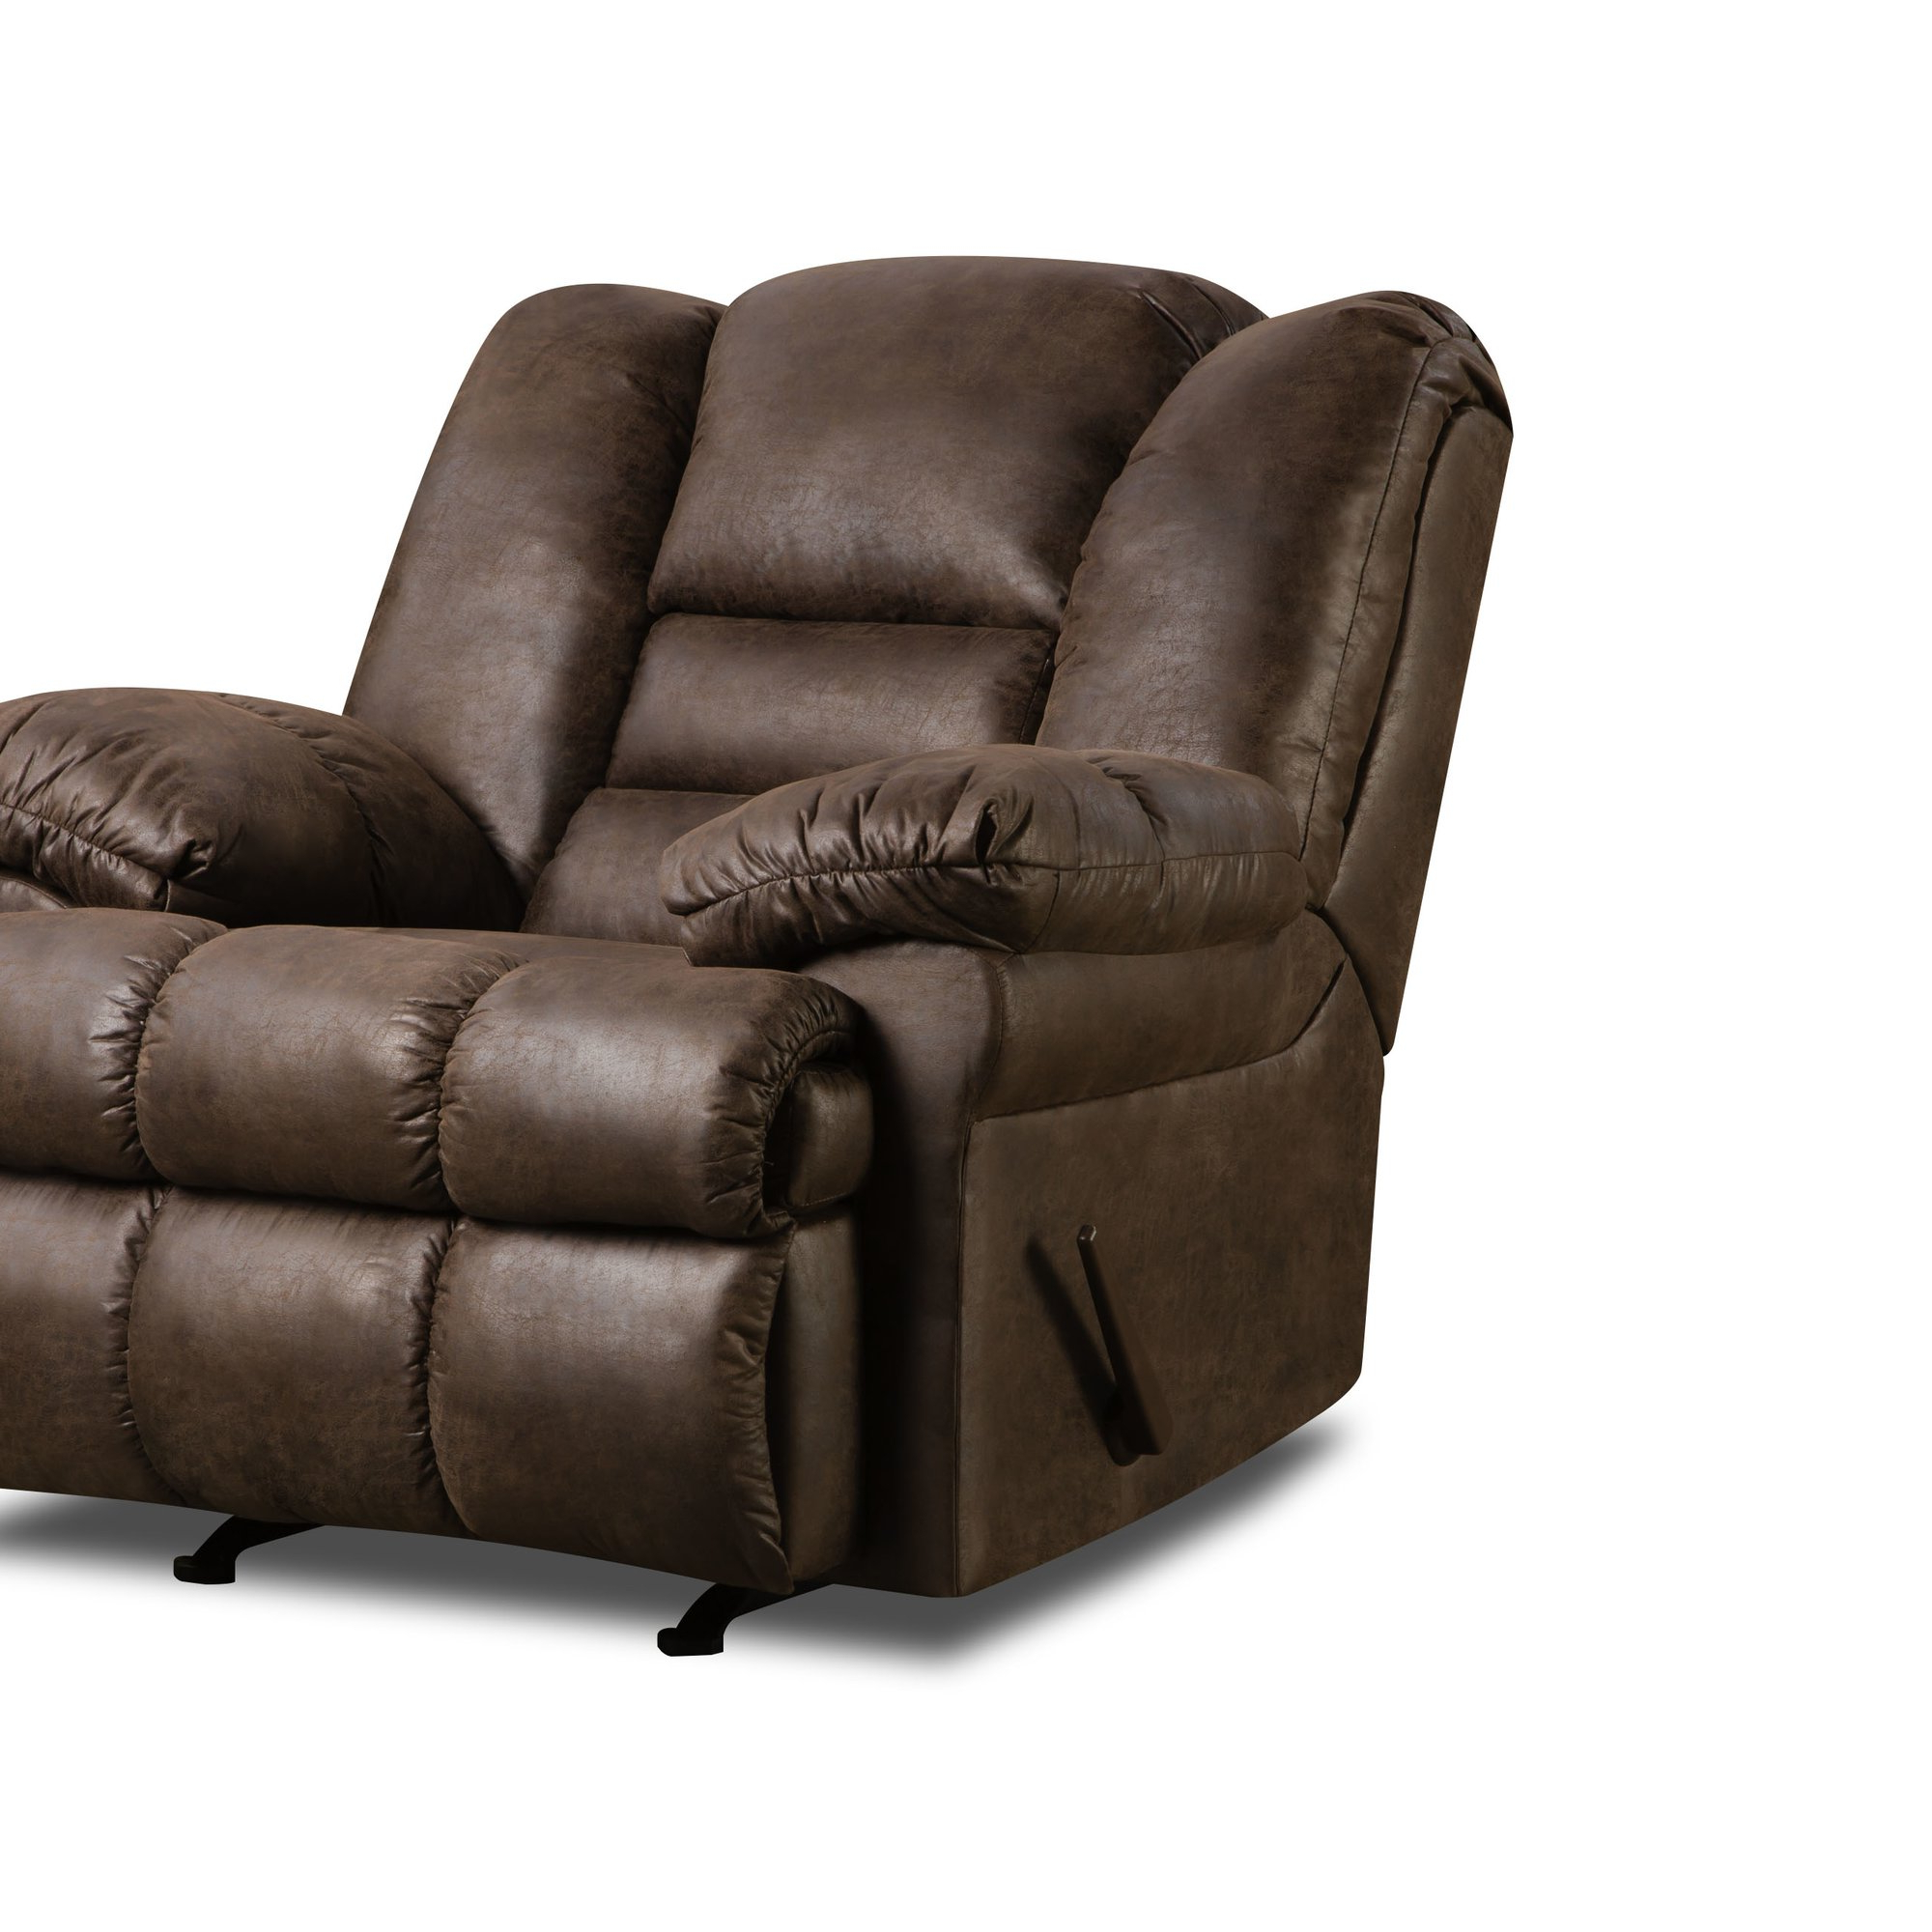 Favorite Rogan Leather Cafe Latte Swivel Glider Recliners Throughout Furniture: Surprising Simmons Recliners For Contemporary Living Room (View 13 of 20)